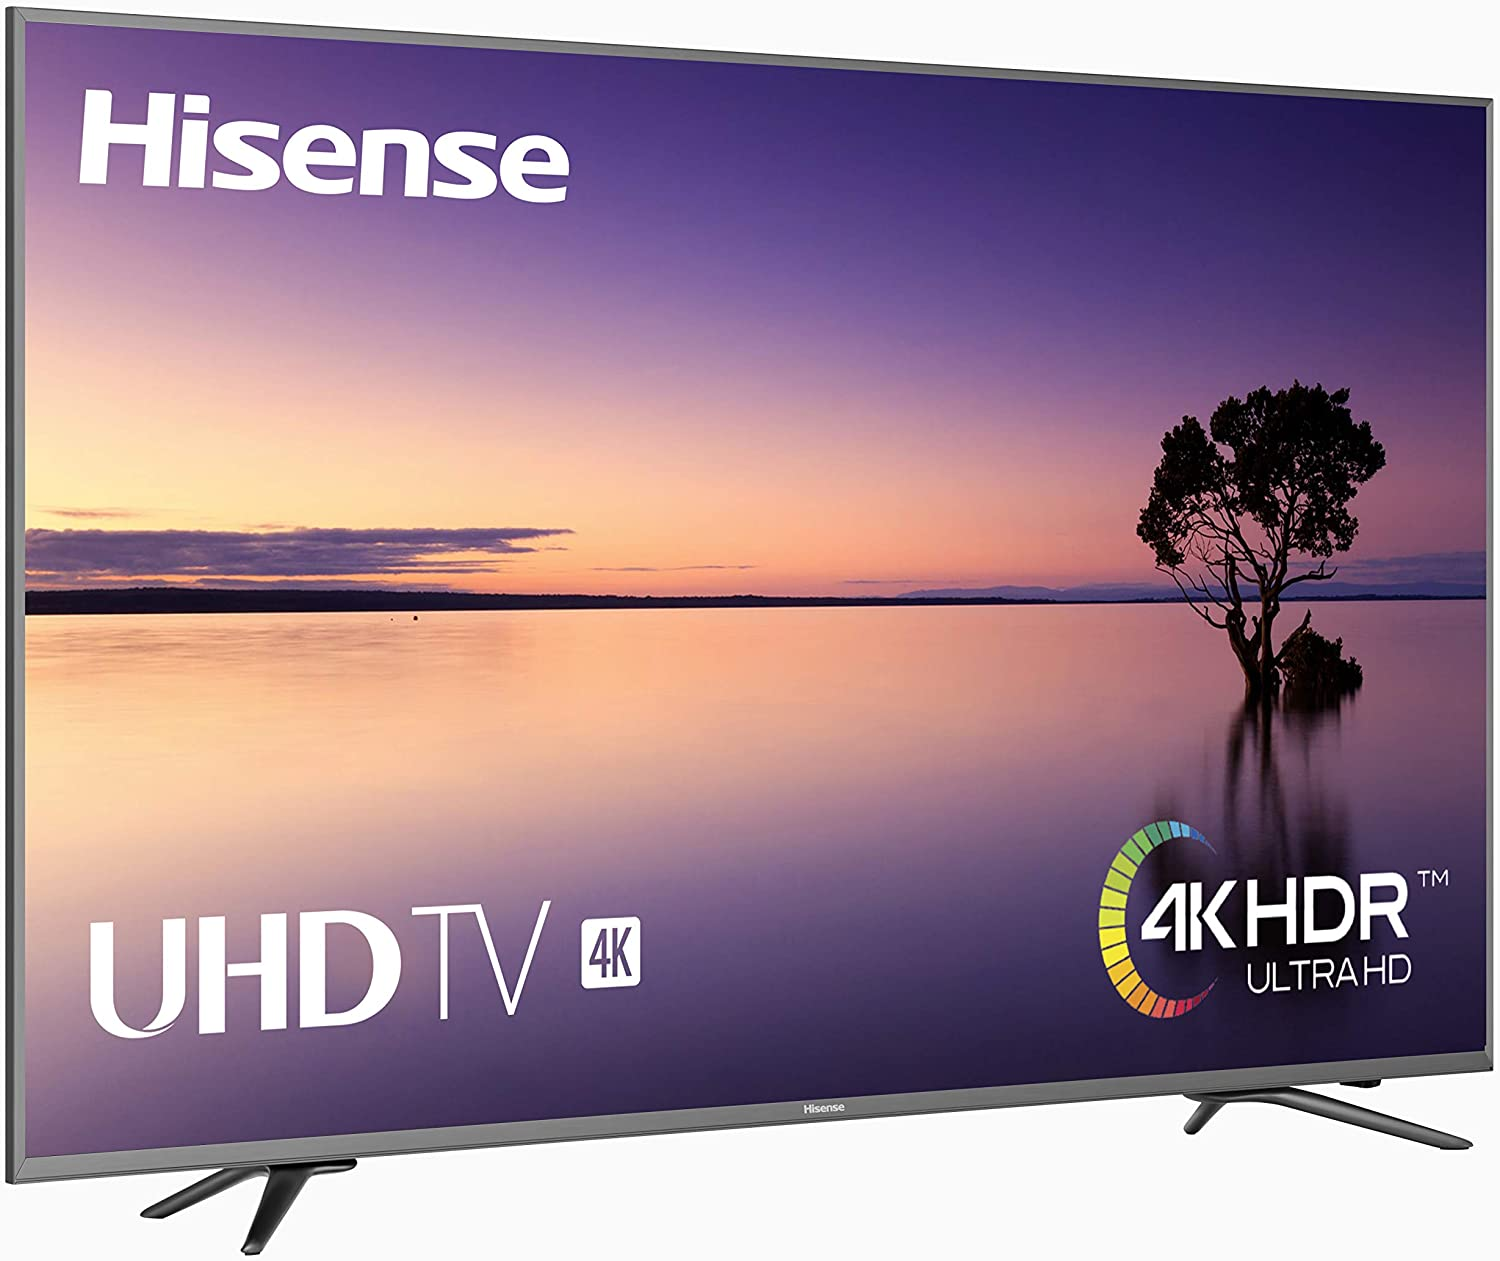 Hisense H75N5800 - Smart TV 75 LCD LED UHD 4K HDR 2400Hz SMART TV WIFI LAN HDMI USB GRABADOR Y REPRODUCTOR MULTIMEDIA: Hisense: Amazon.es: Electrónica